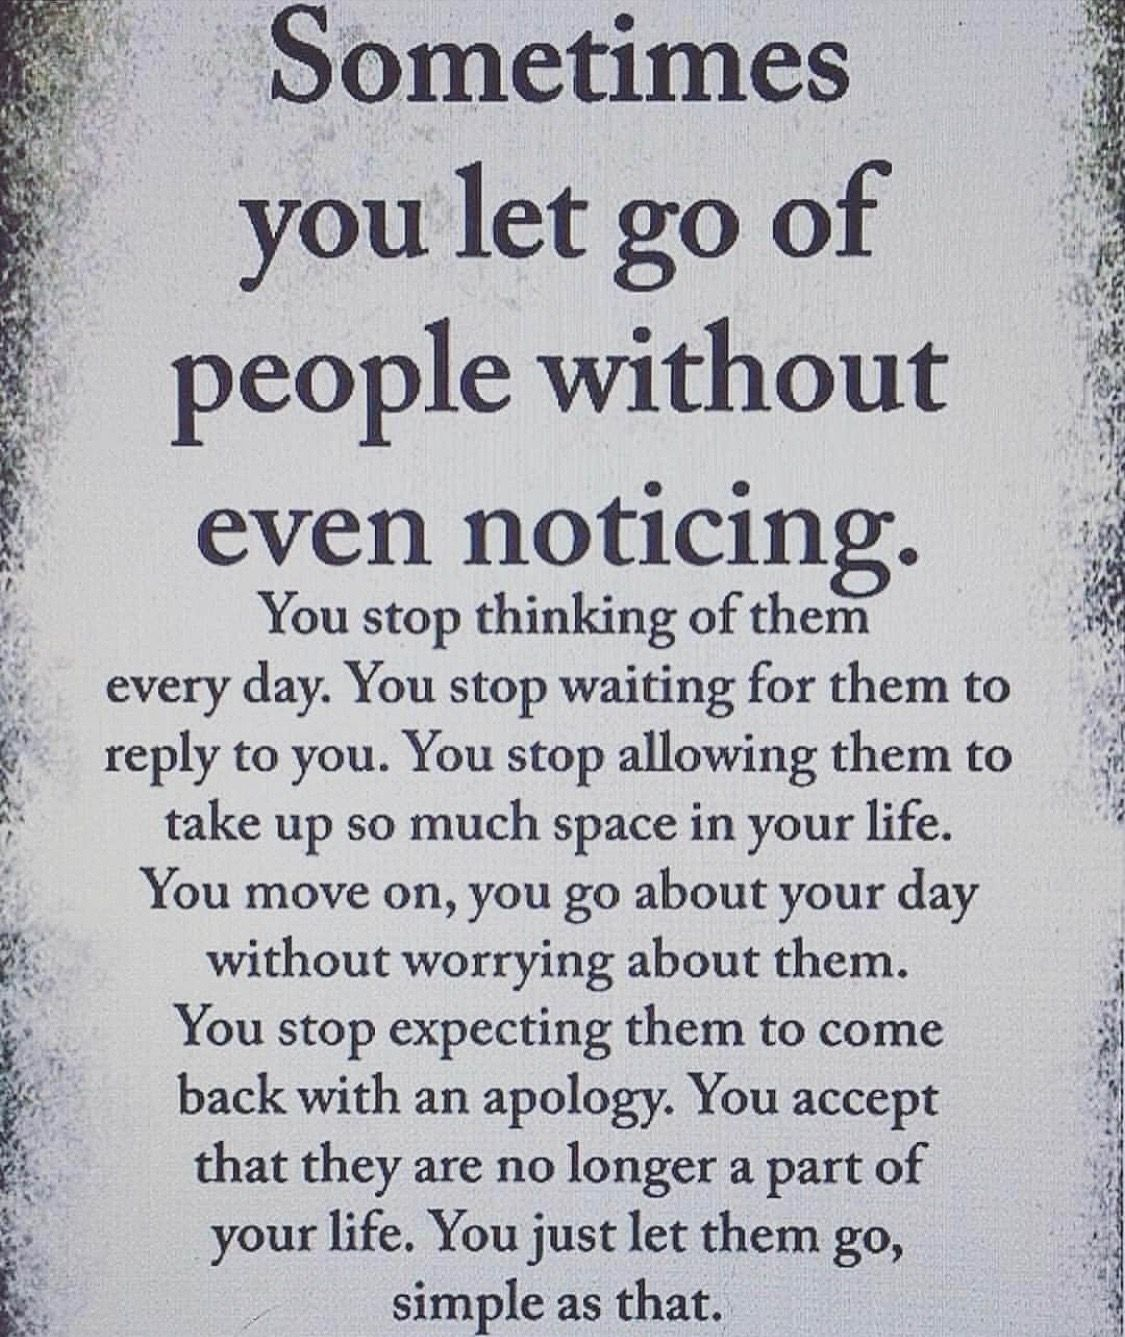 Pin By Ceallaigh On Letting Go Dd Letting People Go Daily Inspiration Quotes Time Quotes